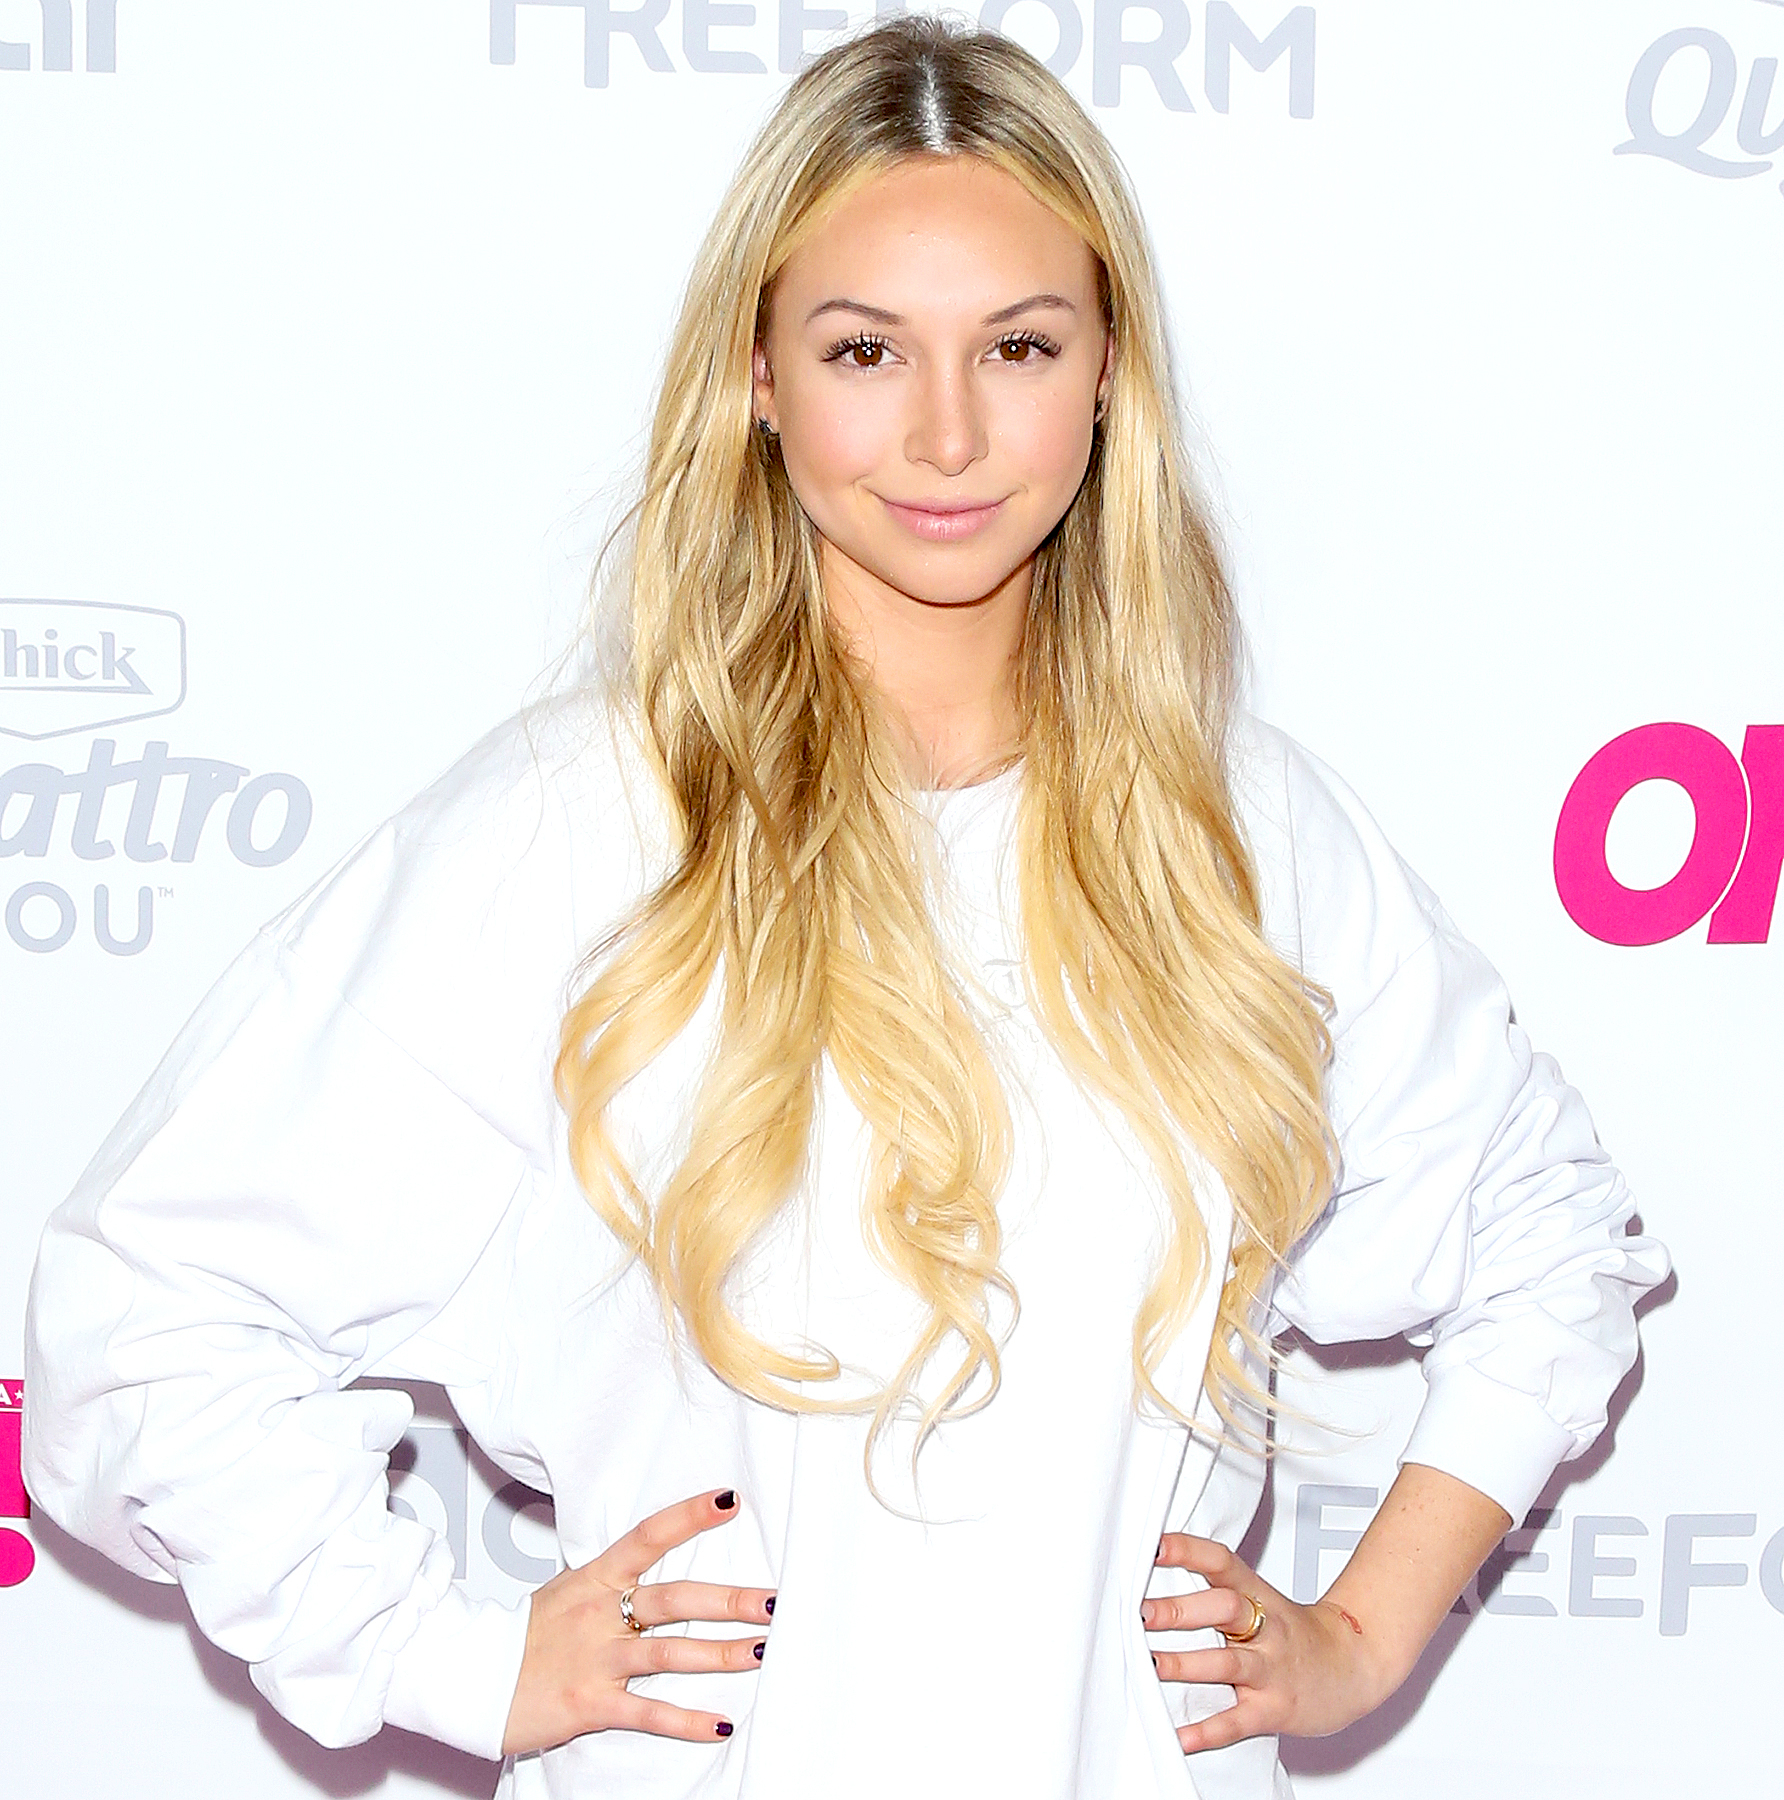 Corinne Olympios attends OK! Magazine's Summer kick-off party at The W Hollywood on May 17, 2017 in Hollywood, California.